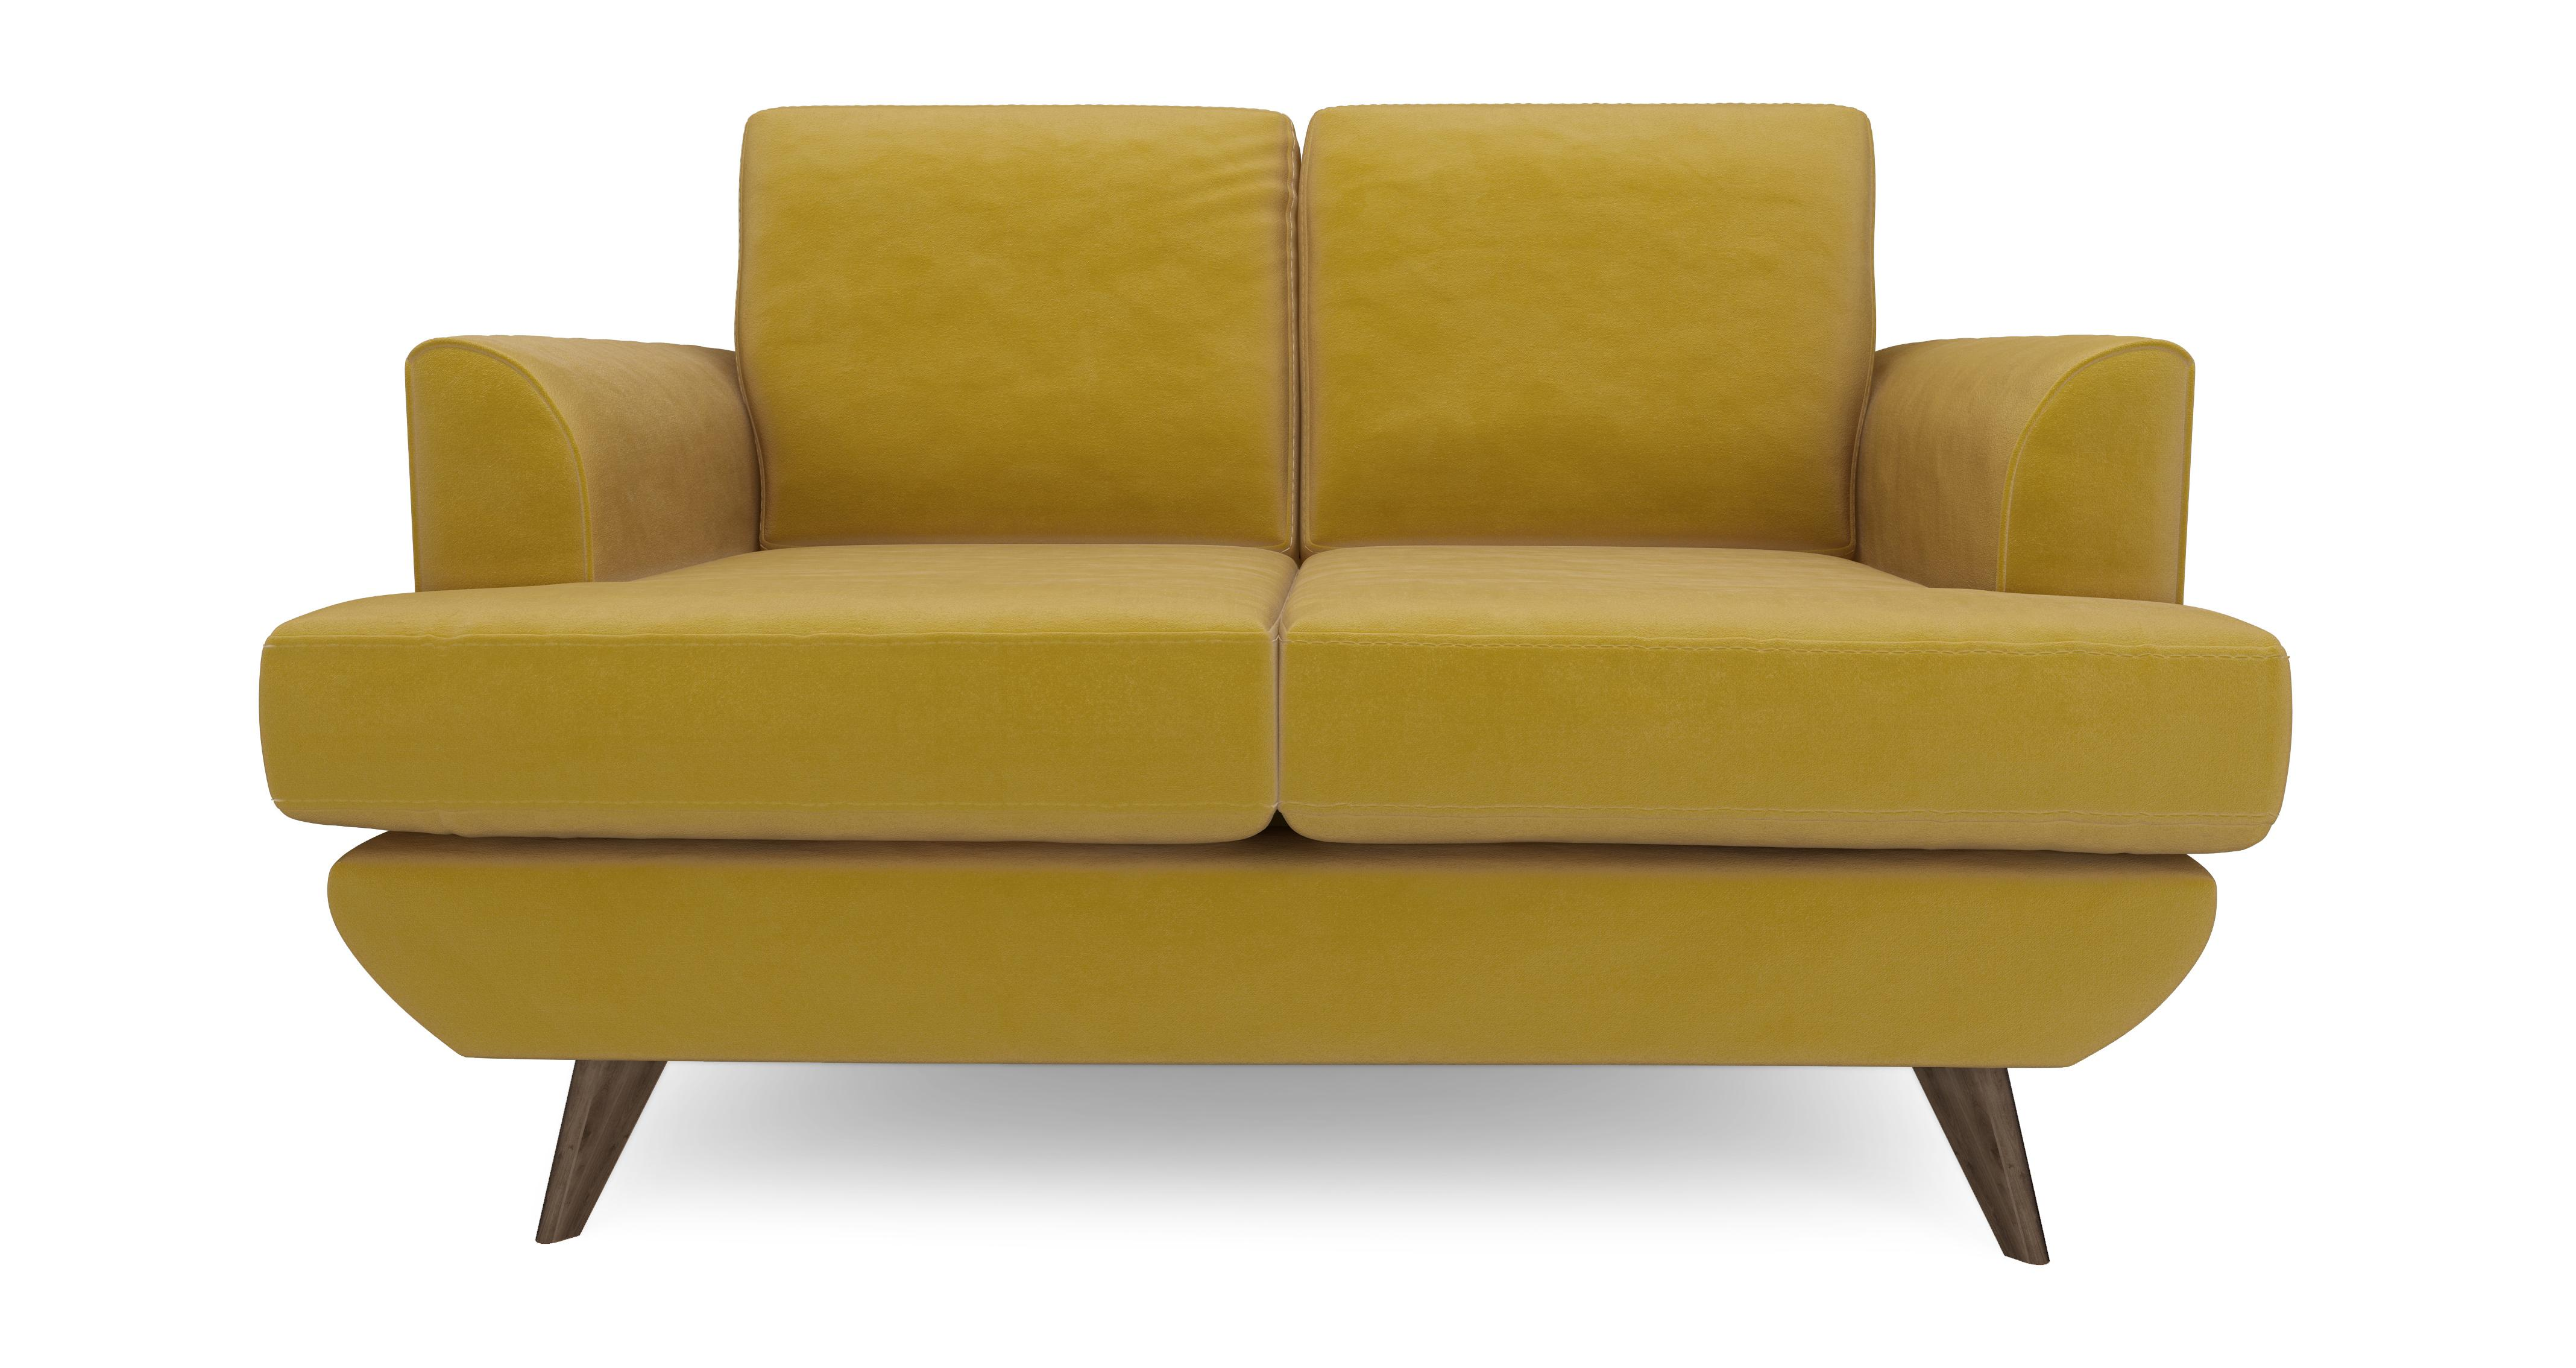 Incroyable Lull Compact Sofa Velvet | DFS Ireland